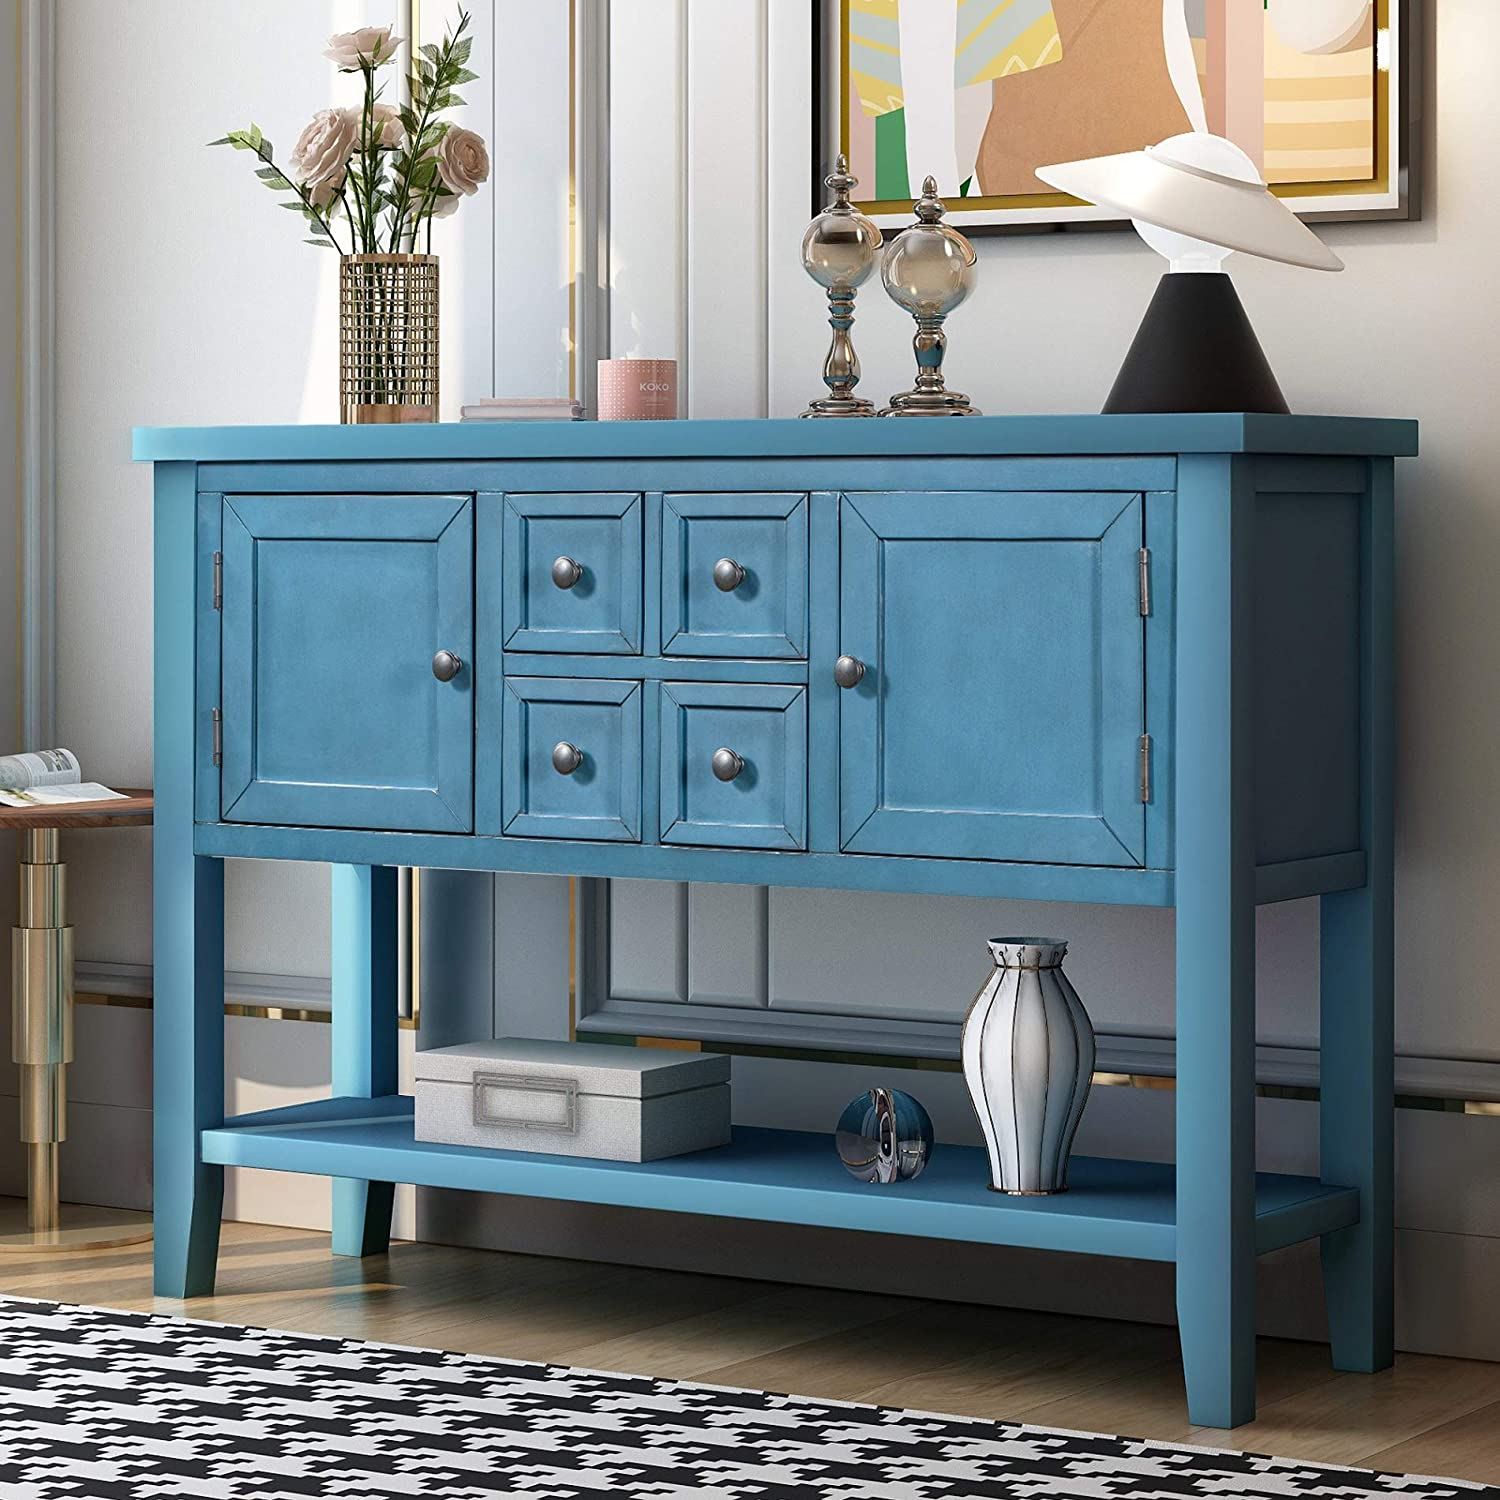 Console Table Sideboard Buffet 正規品スーパーSALE×店内全品キャンペーン Storage fo Cabinet Home おすすめ特集 Furniture